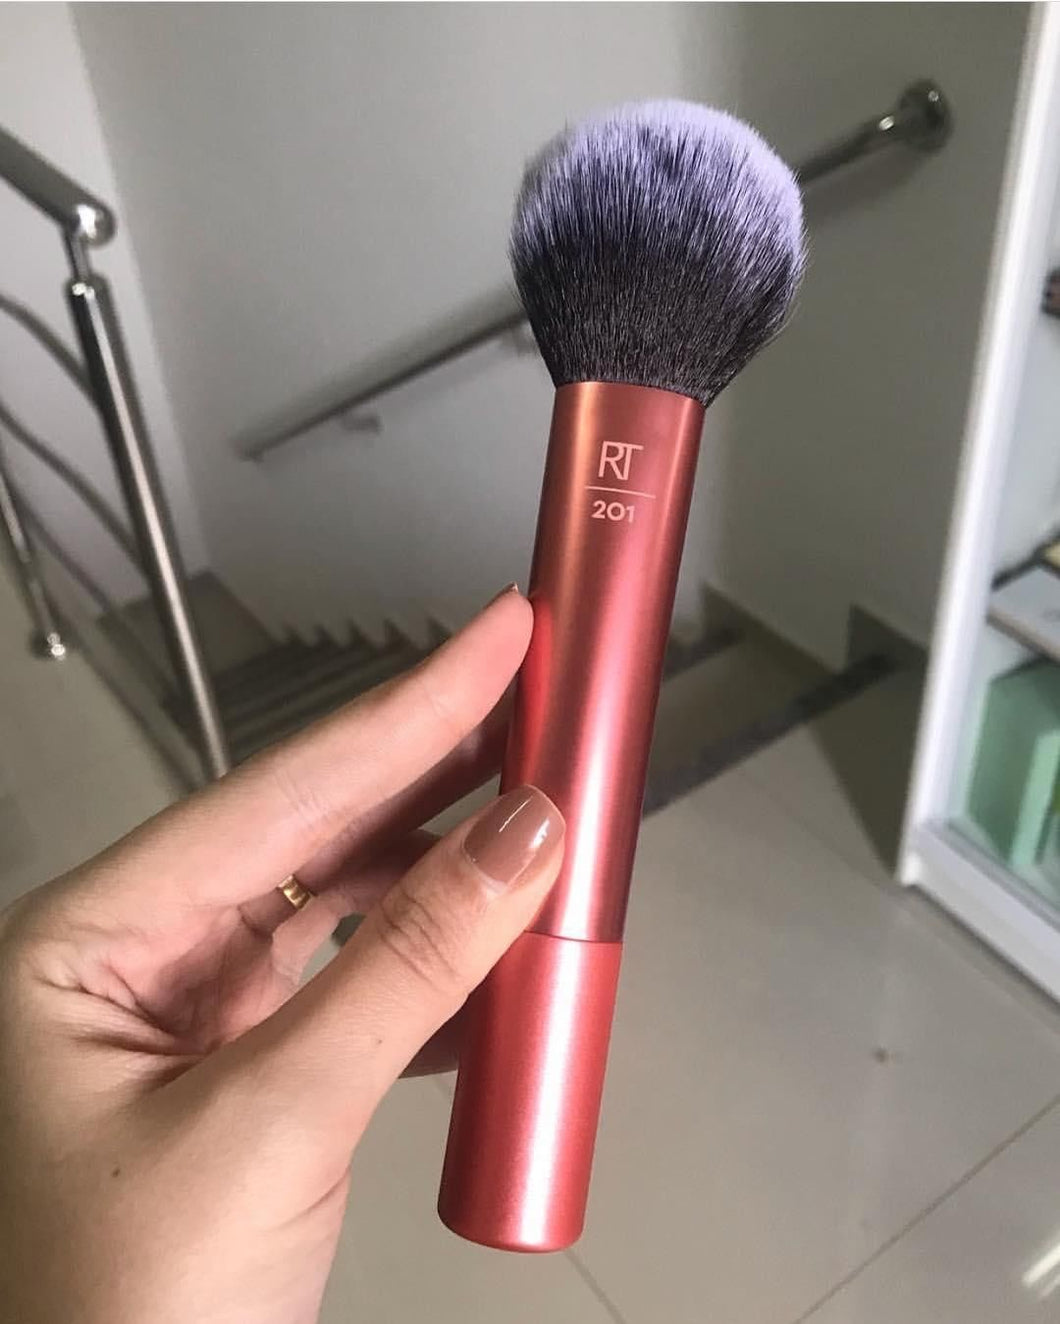 Real techniques 201 powder brush